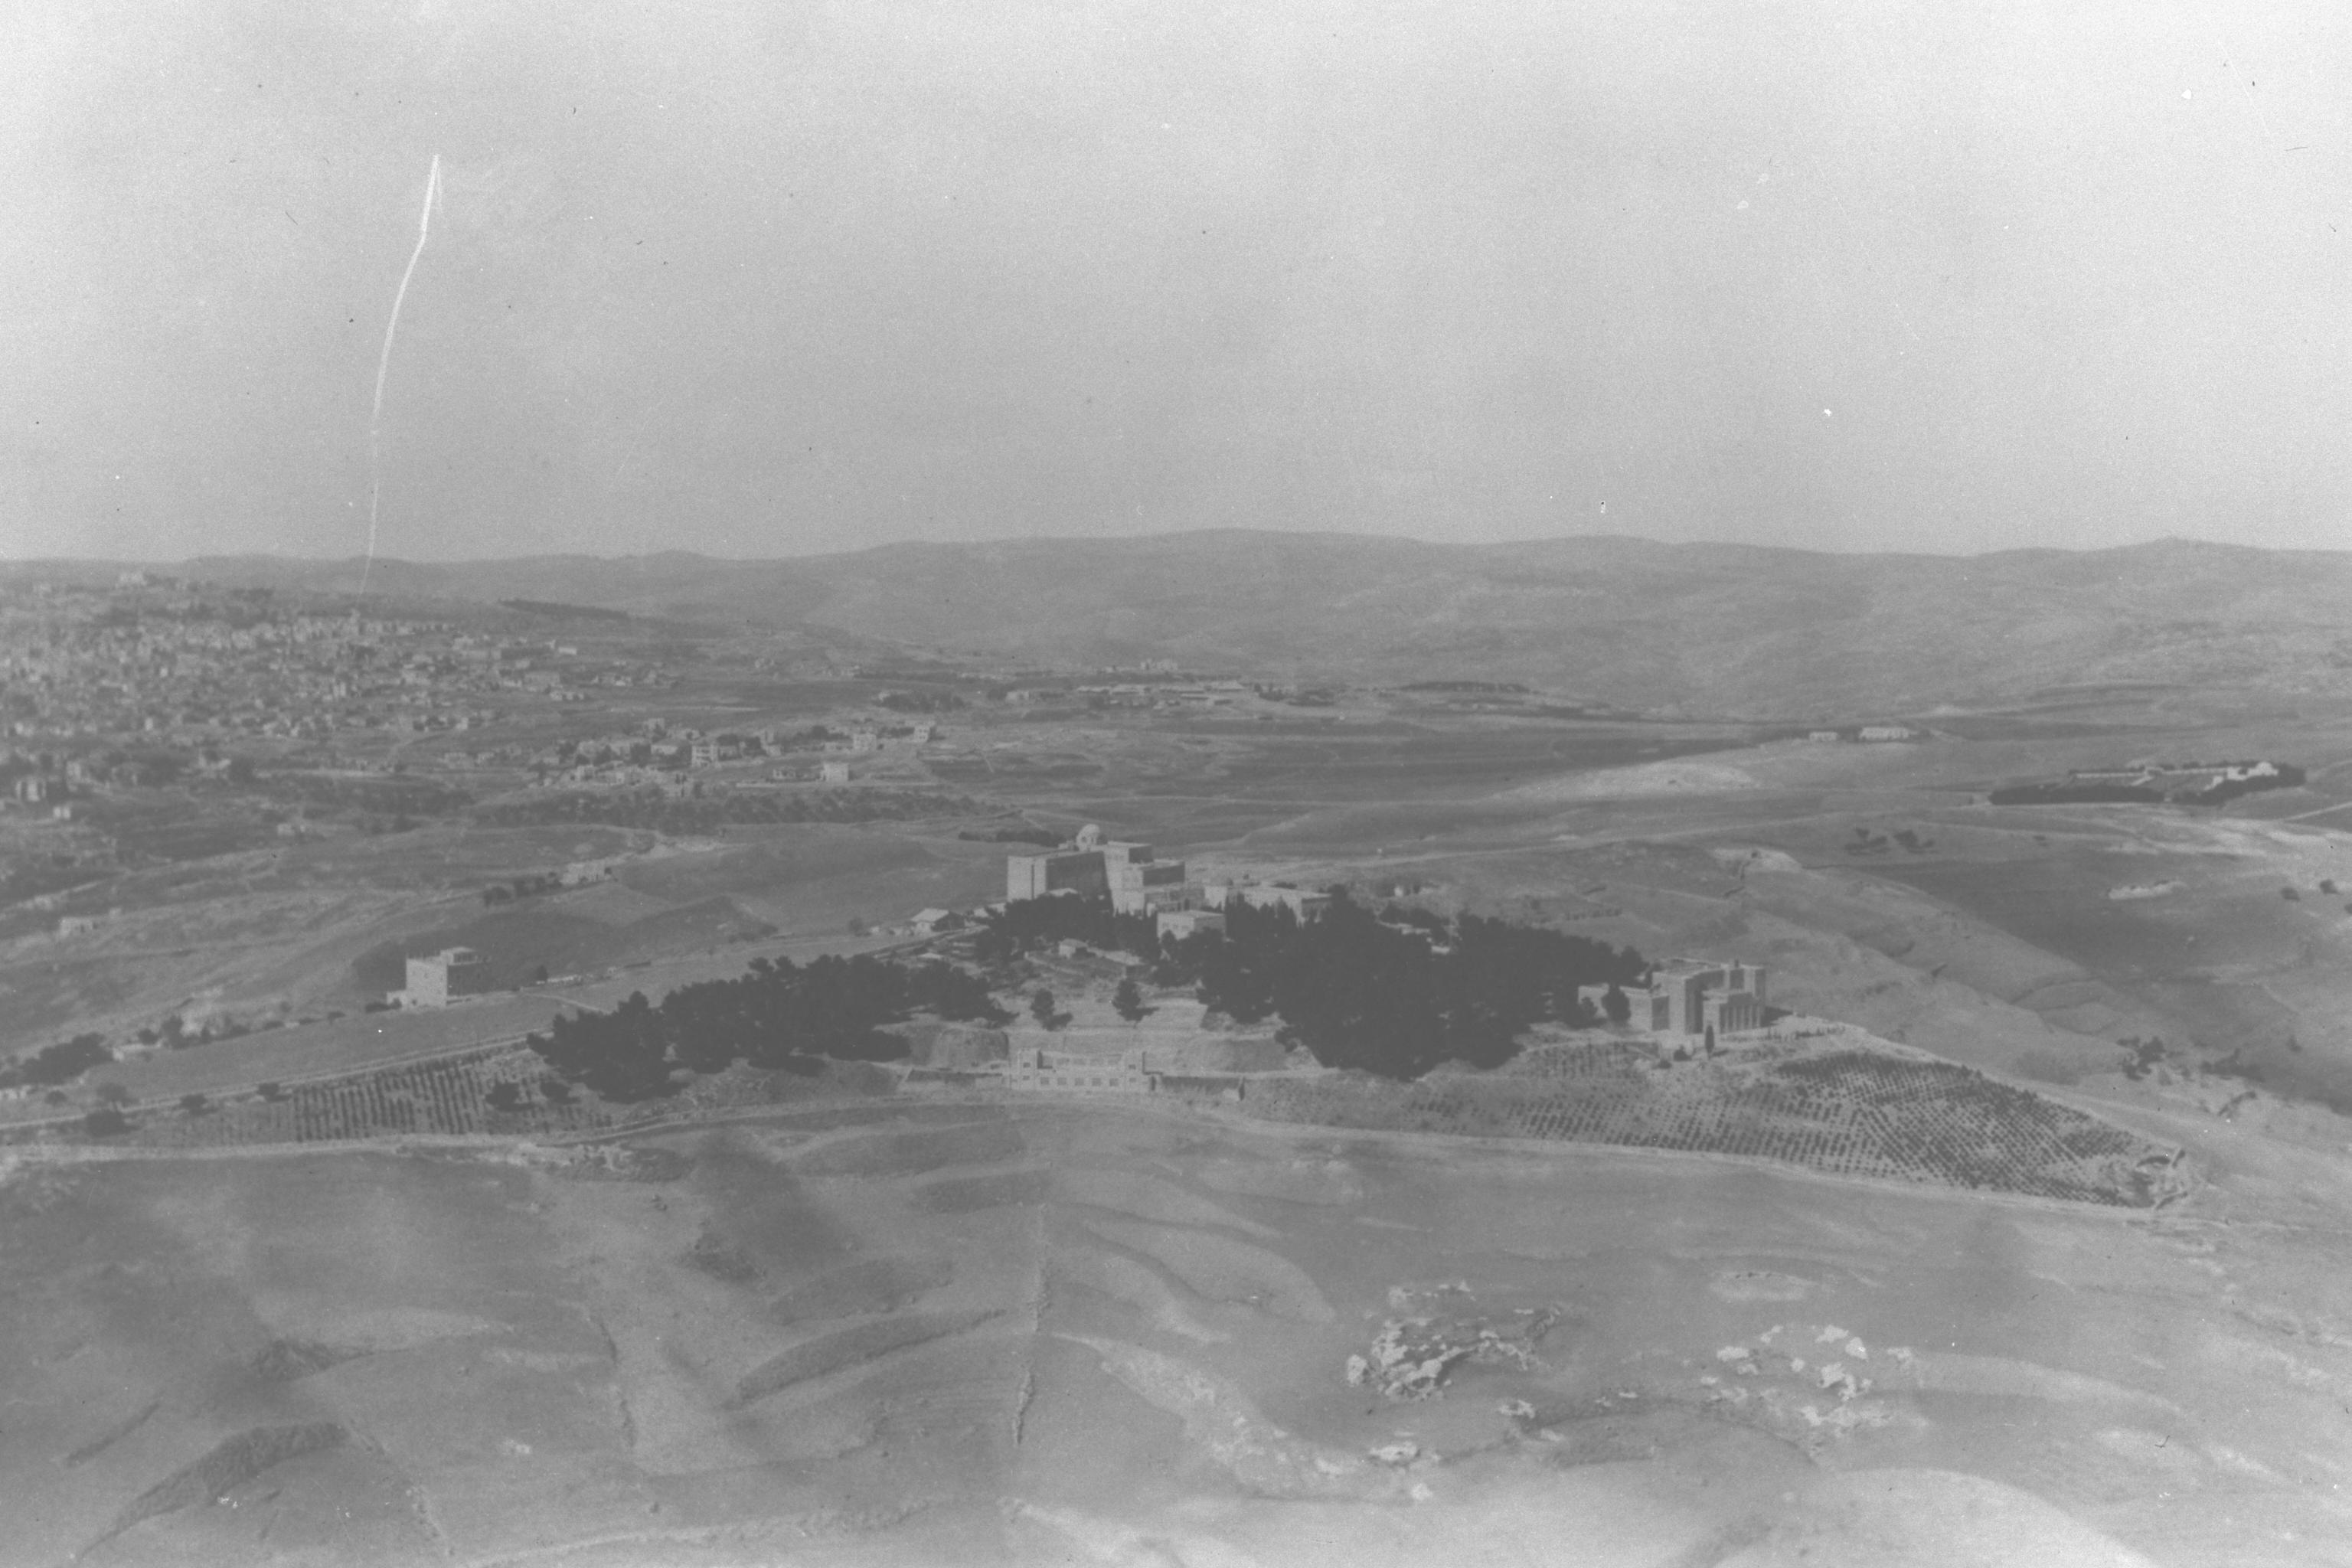 File:AERIAL VIEW OF THE HEBREW UNIVERSITY ON MOUNT SCOPUS WITH THE